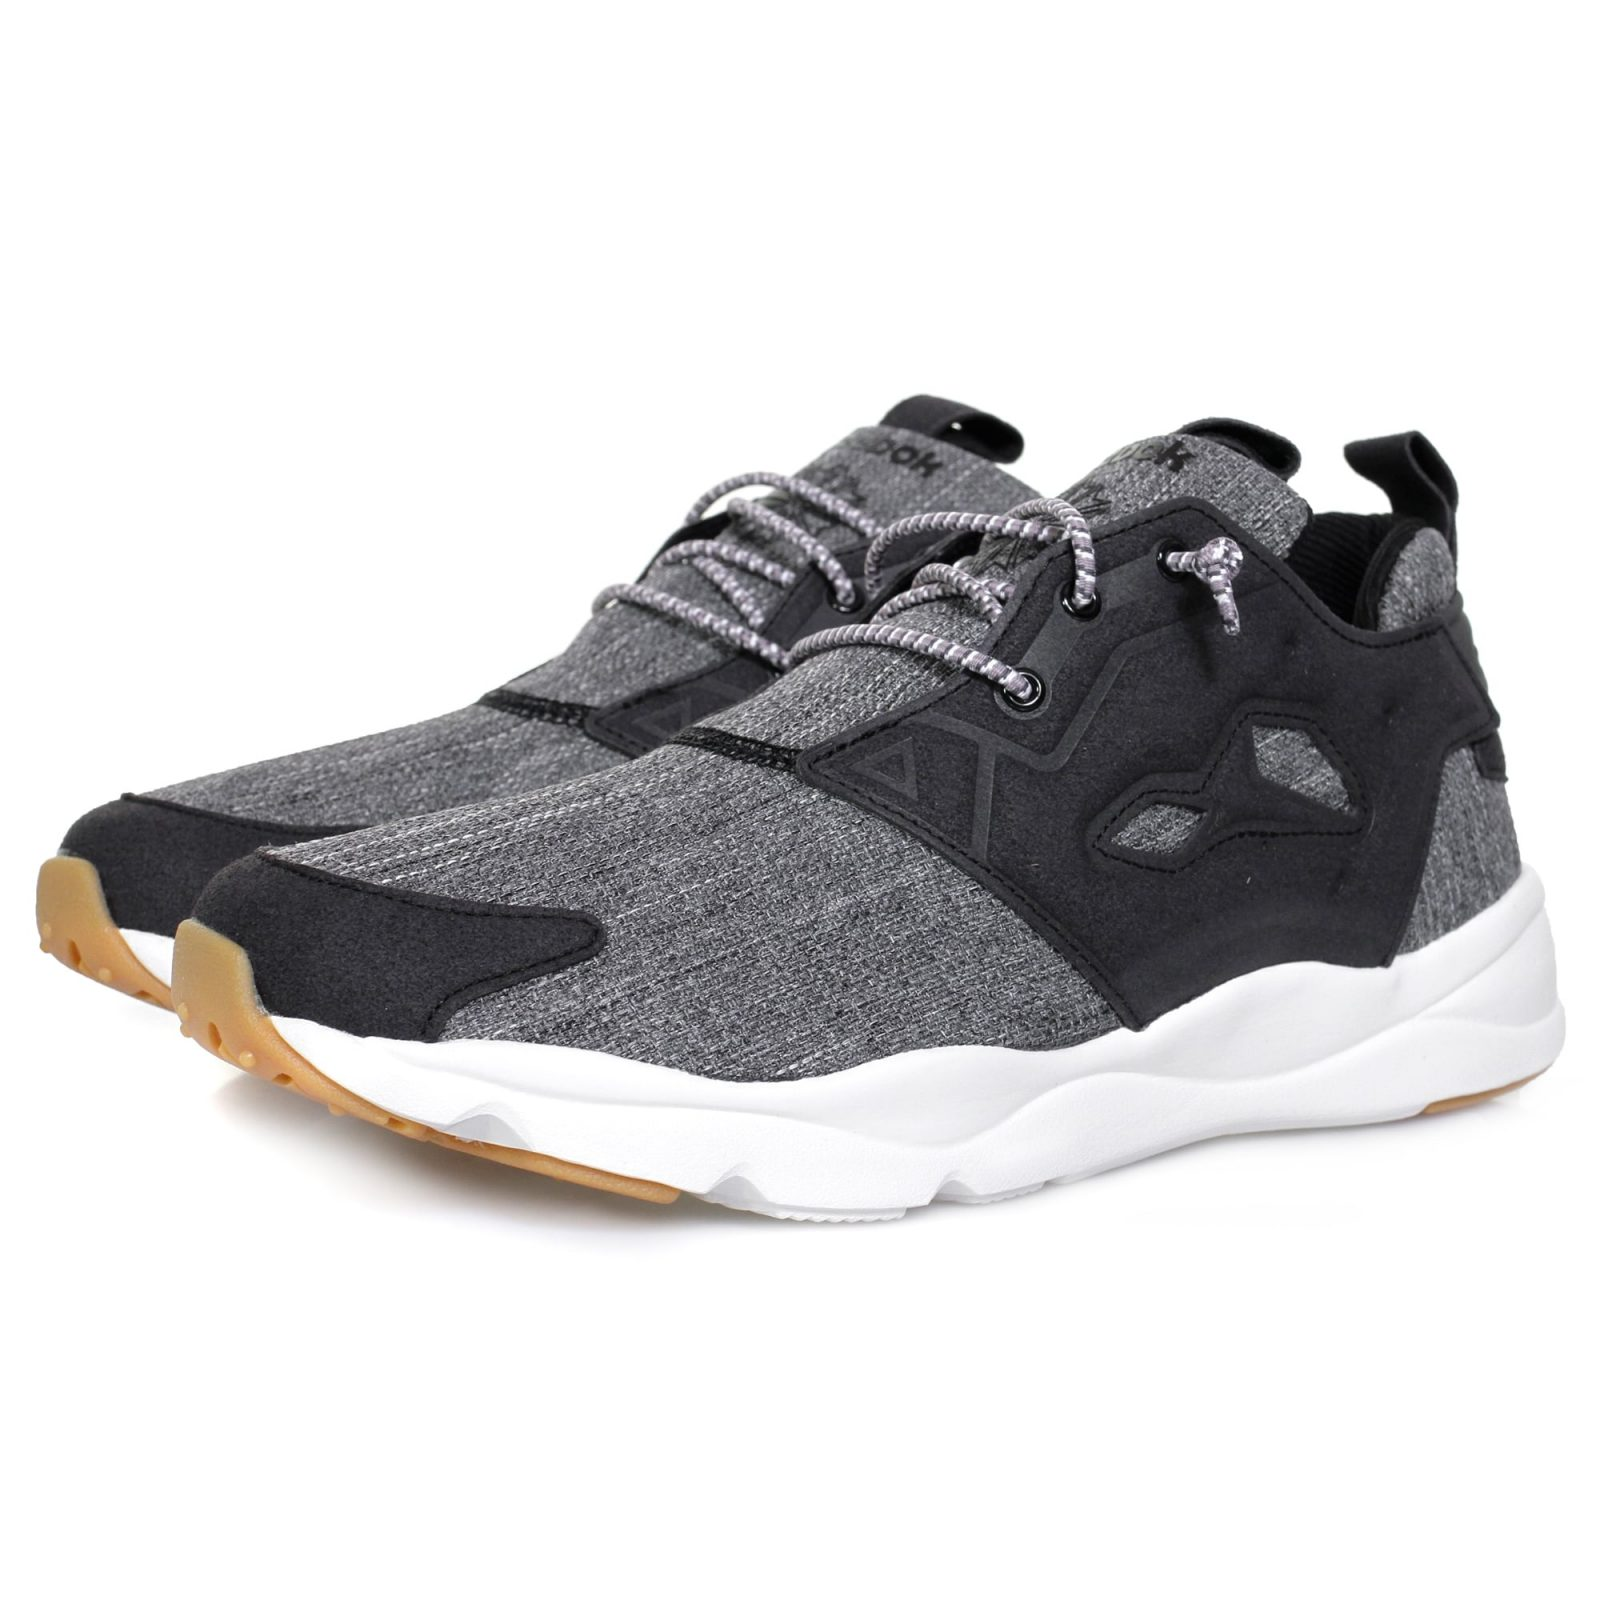 Know The You What Review To Reebok Furylite Need Now 4ARjL35q